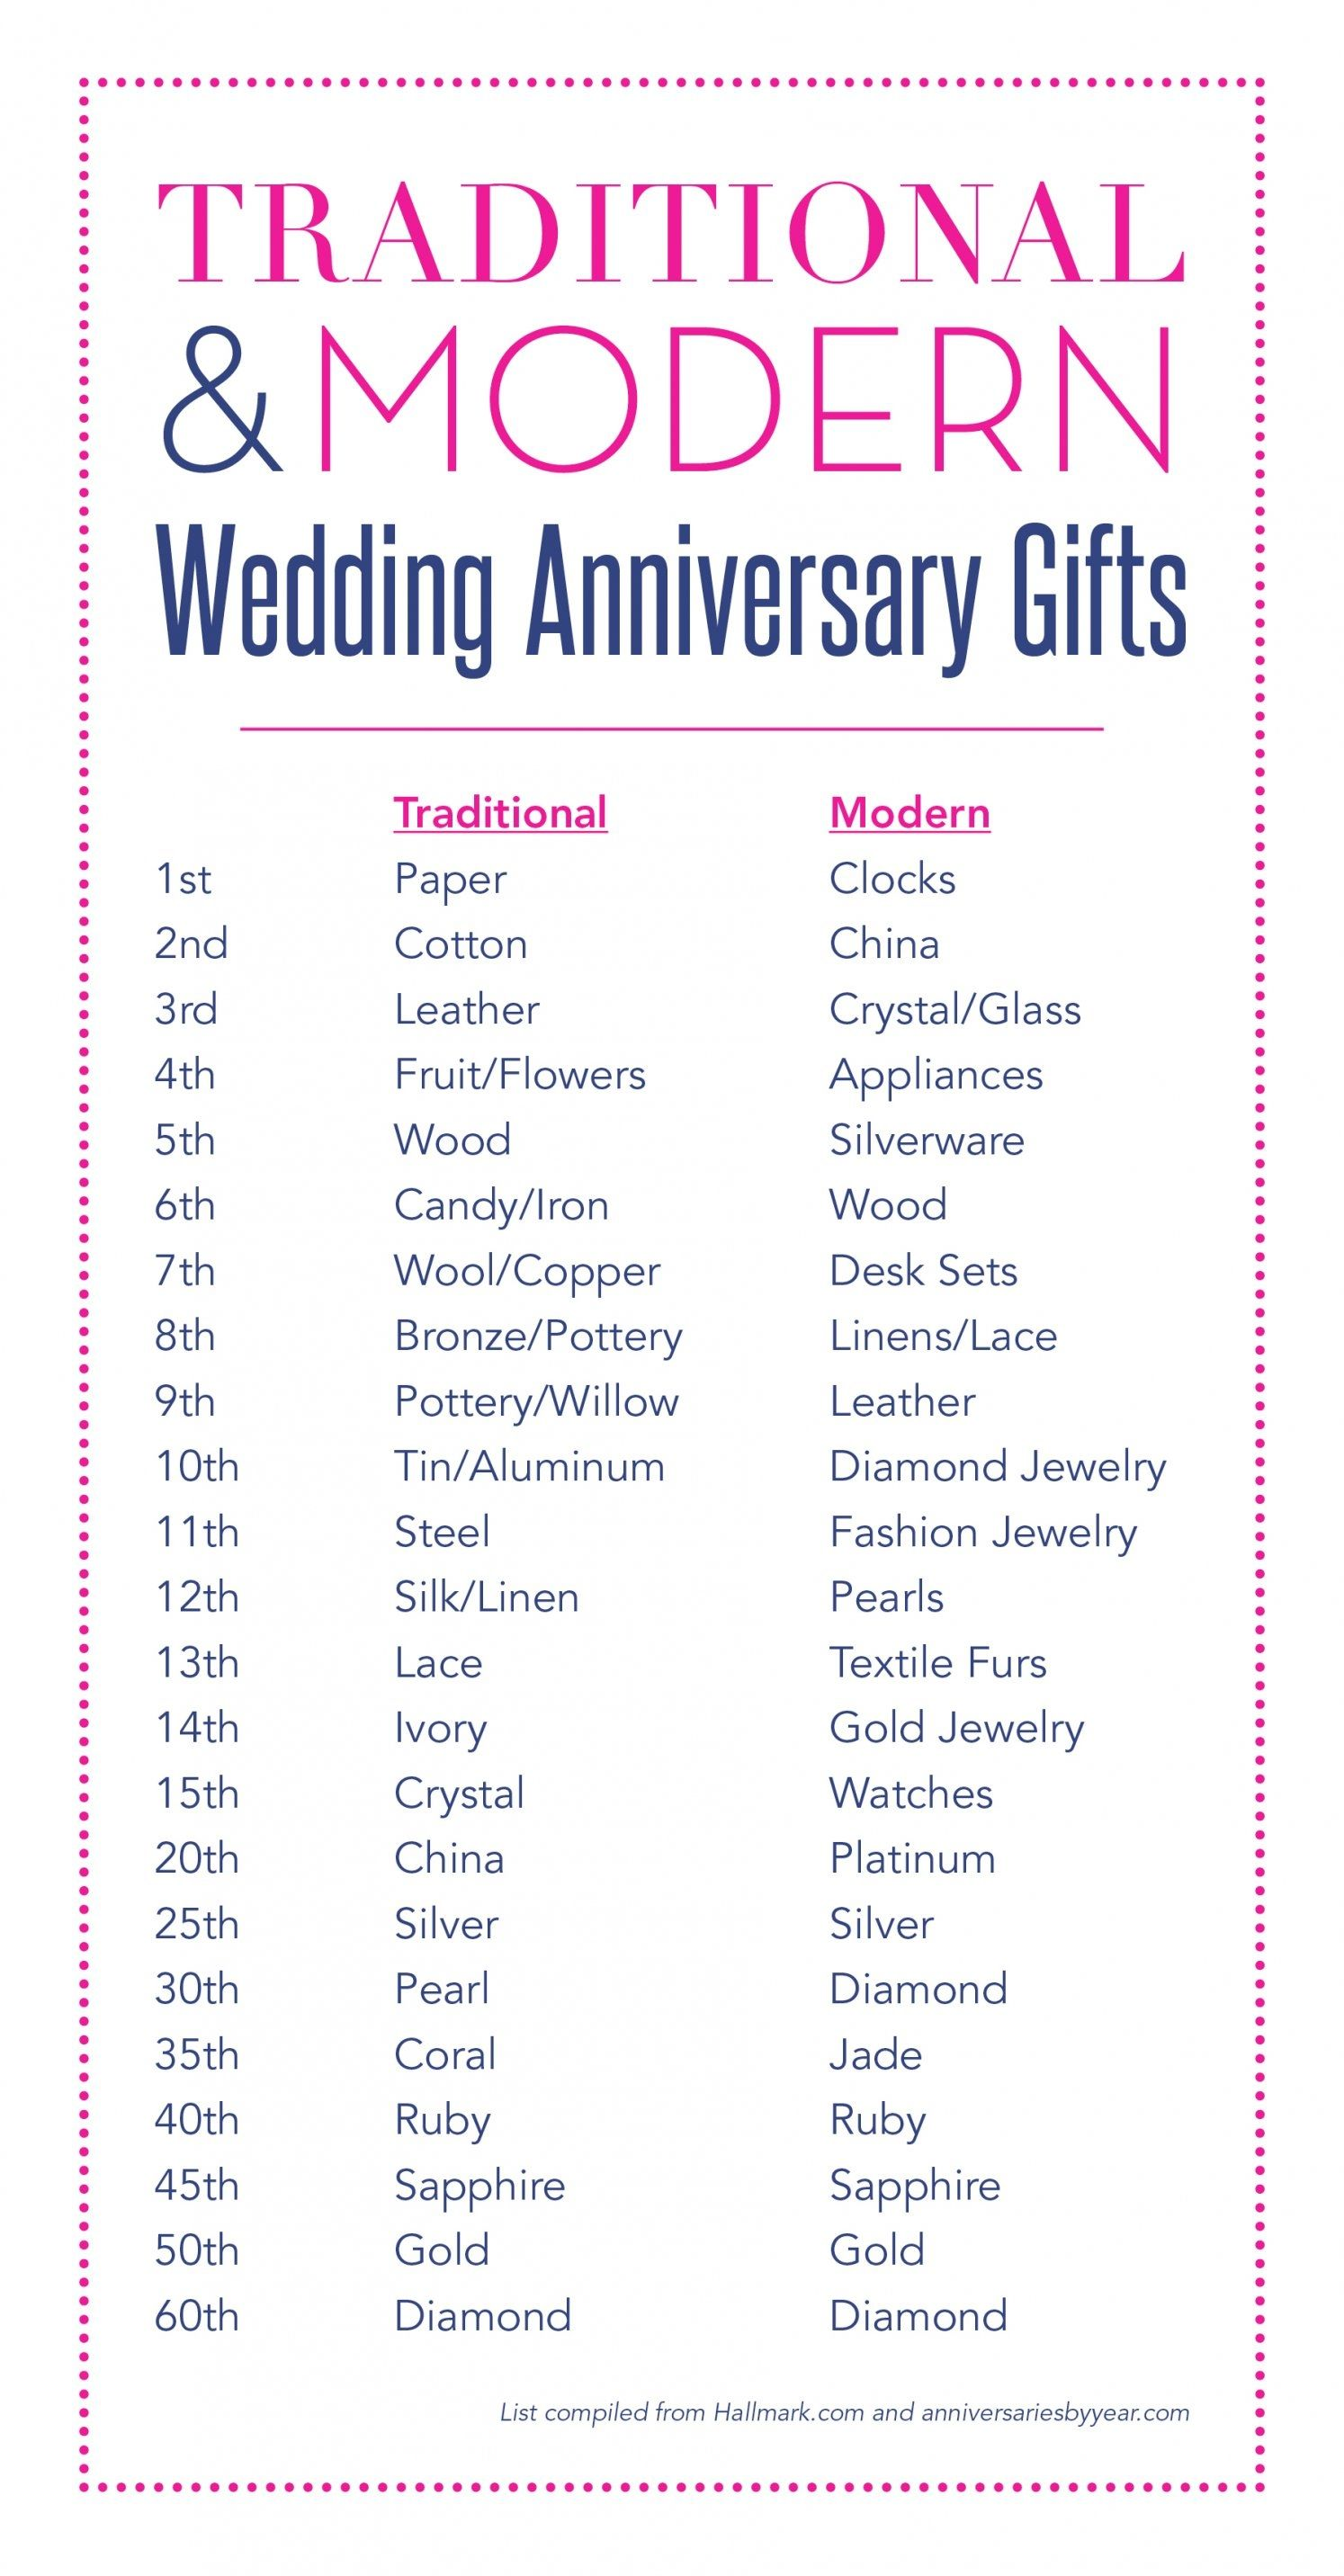 32 Gorgeous Traditional Wedding Anniversary Gifts Ideas Best Inspiration Marriage Anniversary Gifts Third Anniversary Gifts Second Anniversary Gift